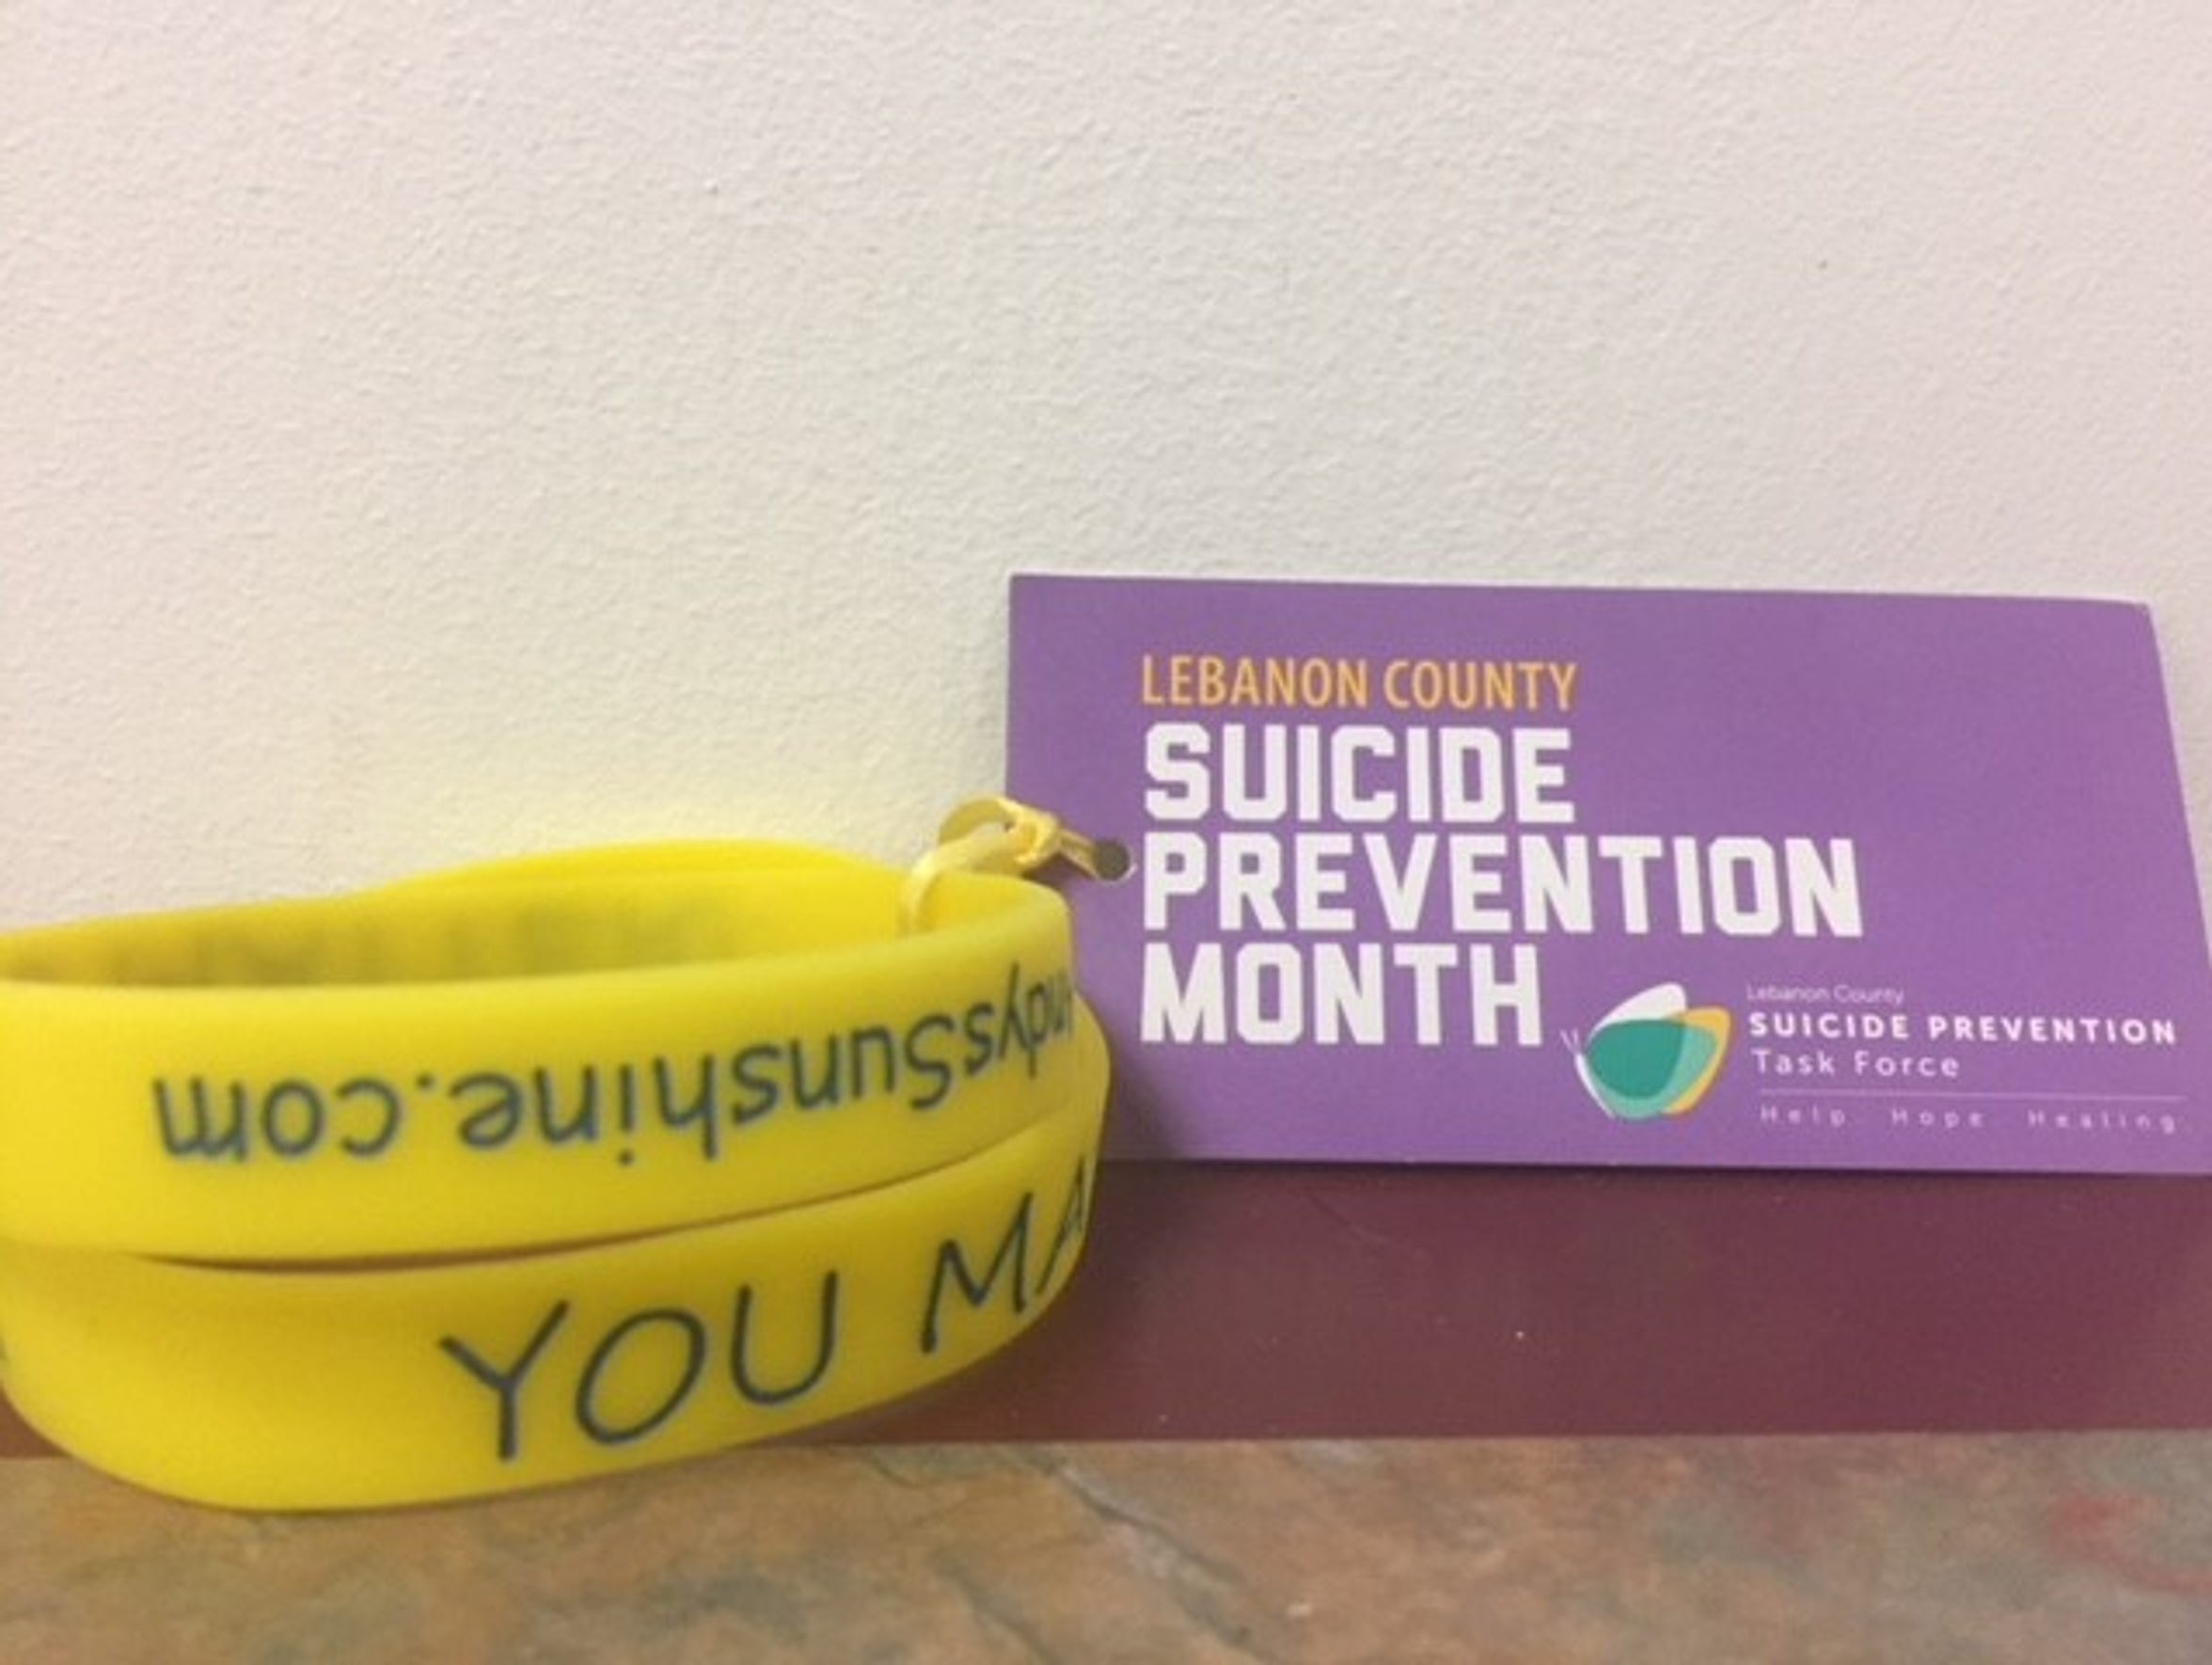 The Lebanon County Suicide Prevention Task Force is